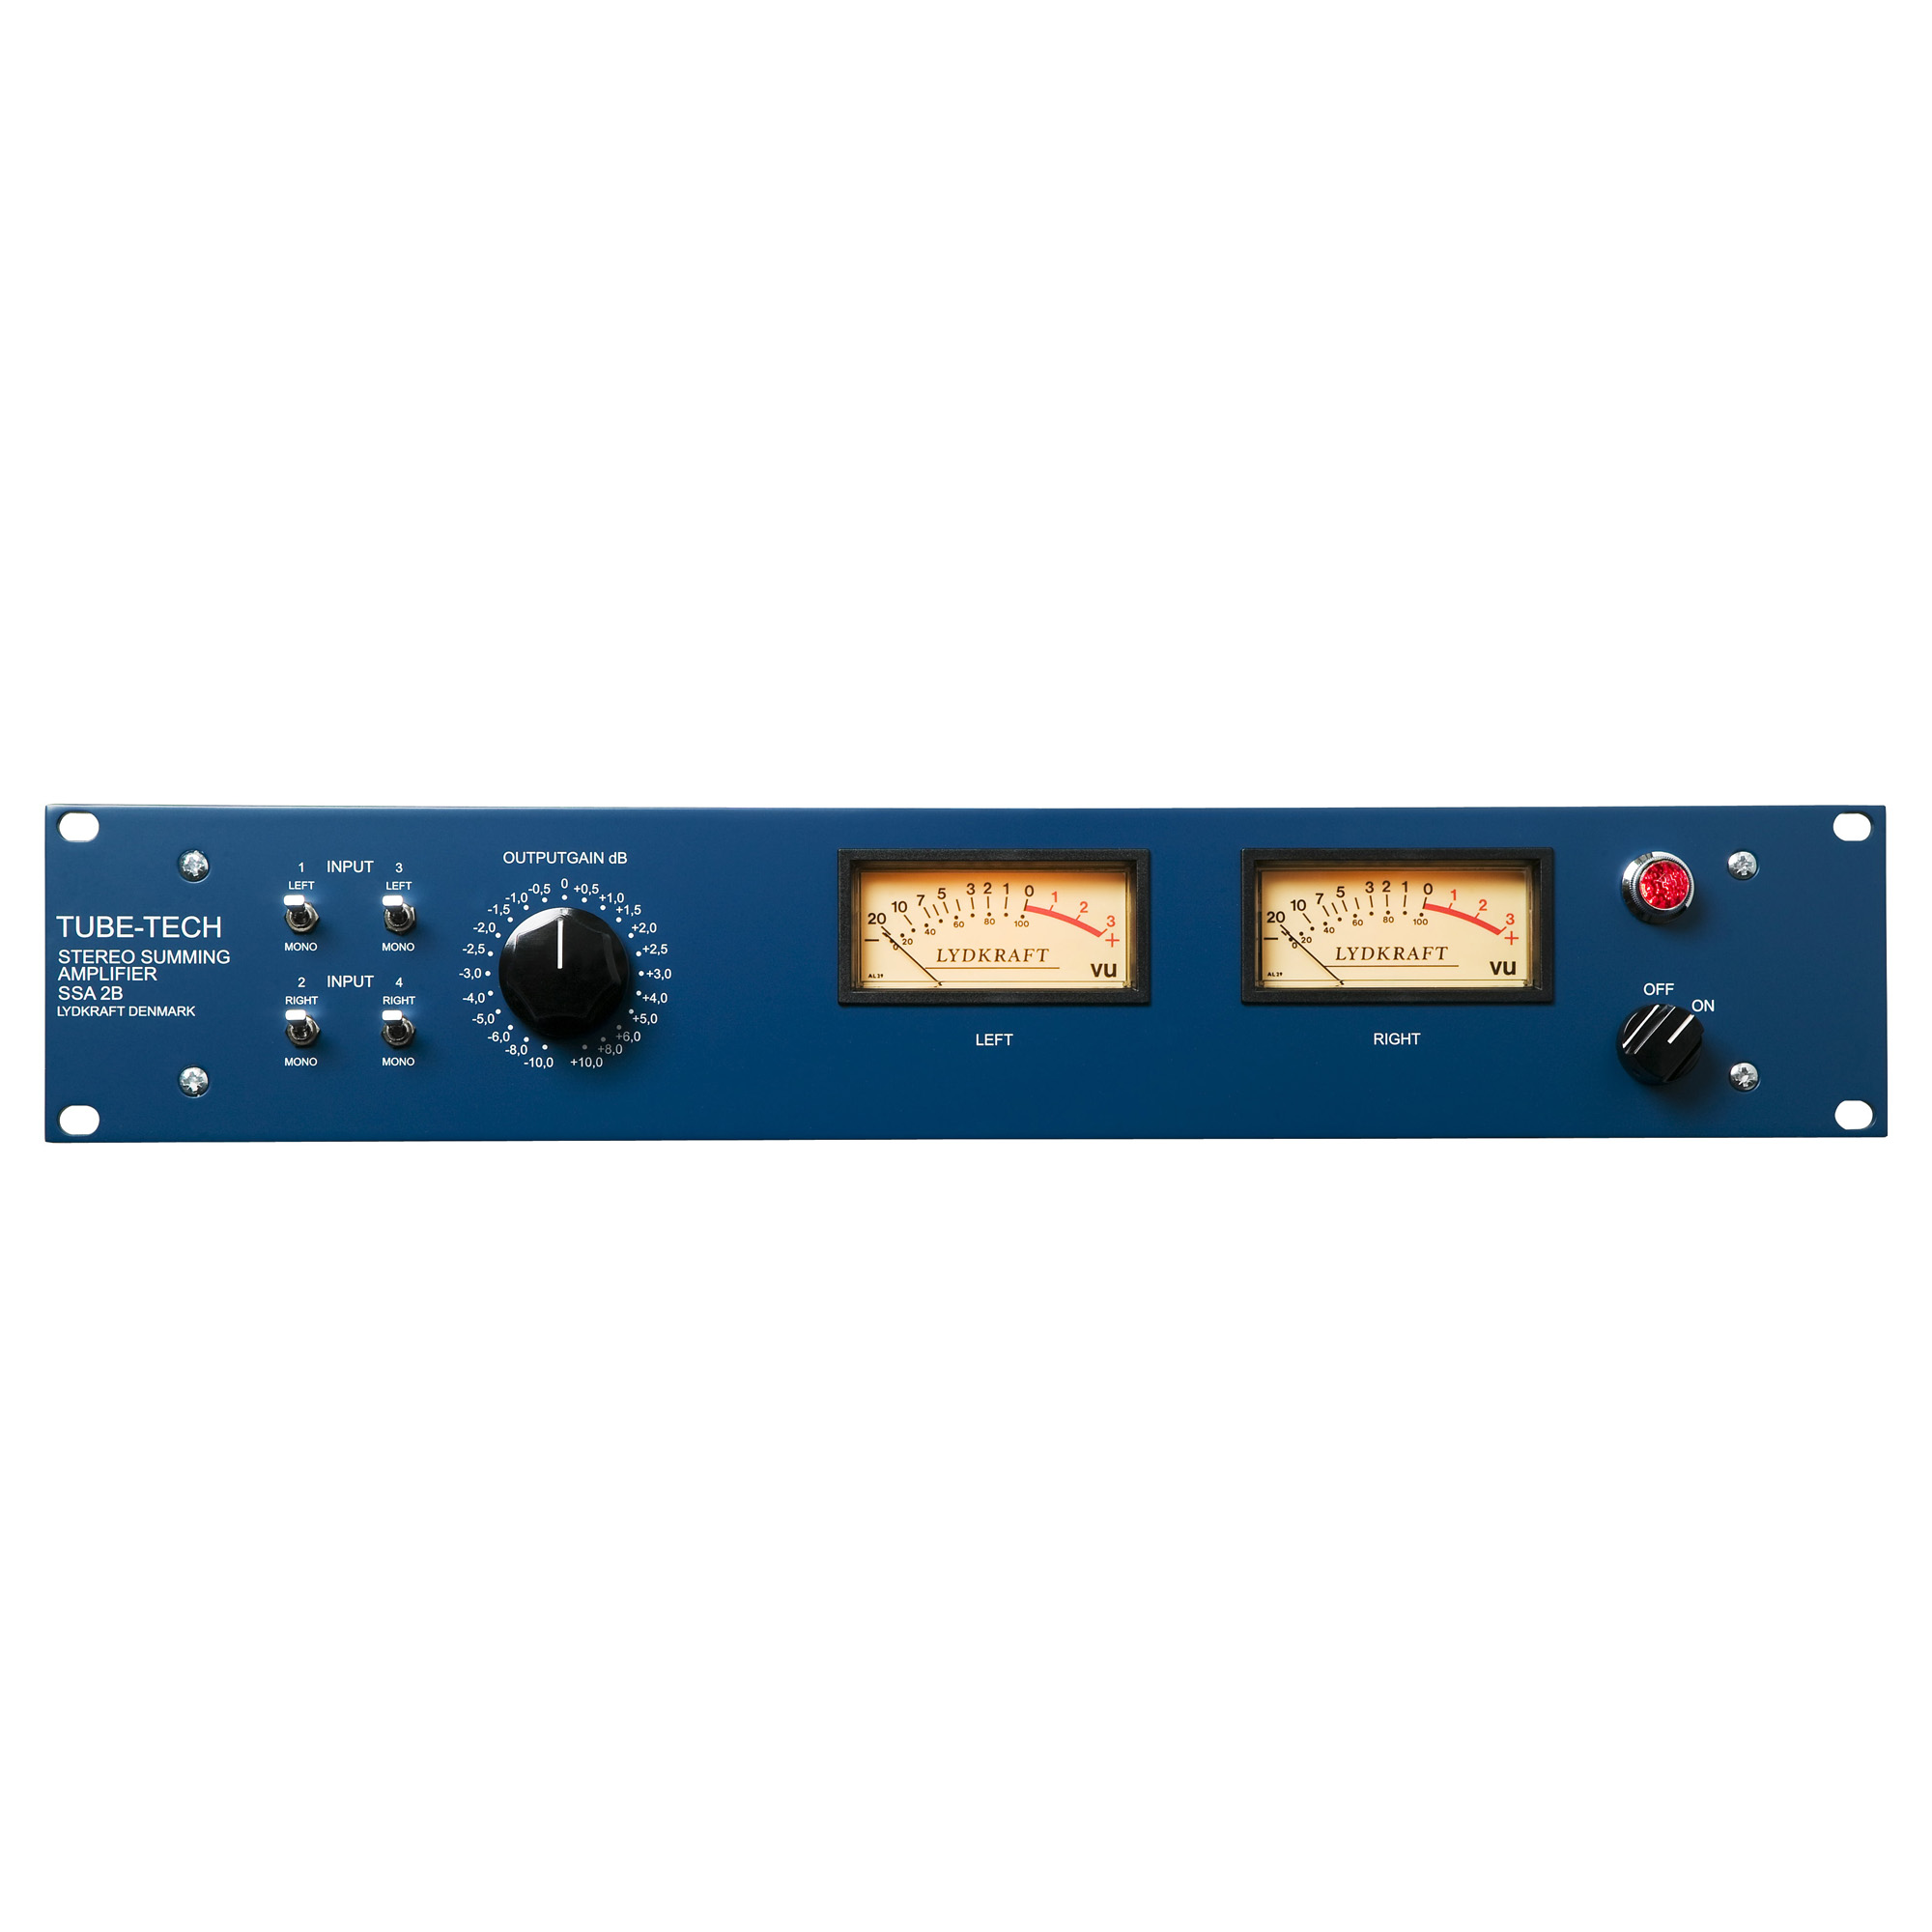 Tube Tech Ssa 2b Stereo Summing Amplifier Sonic Circus Supply For Audio Mixer Circuit Schematic Diagram